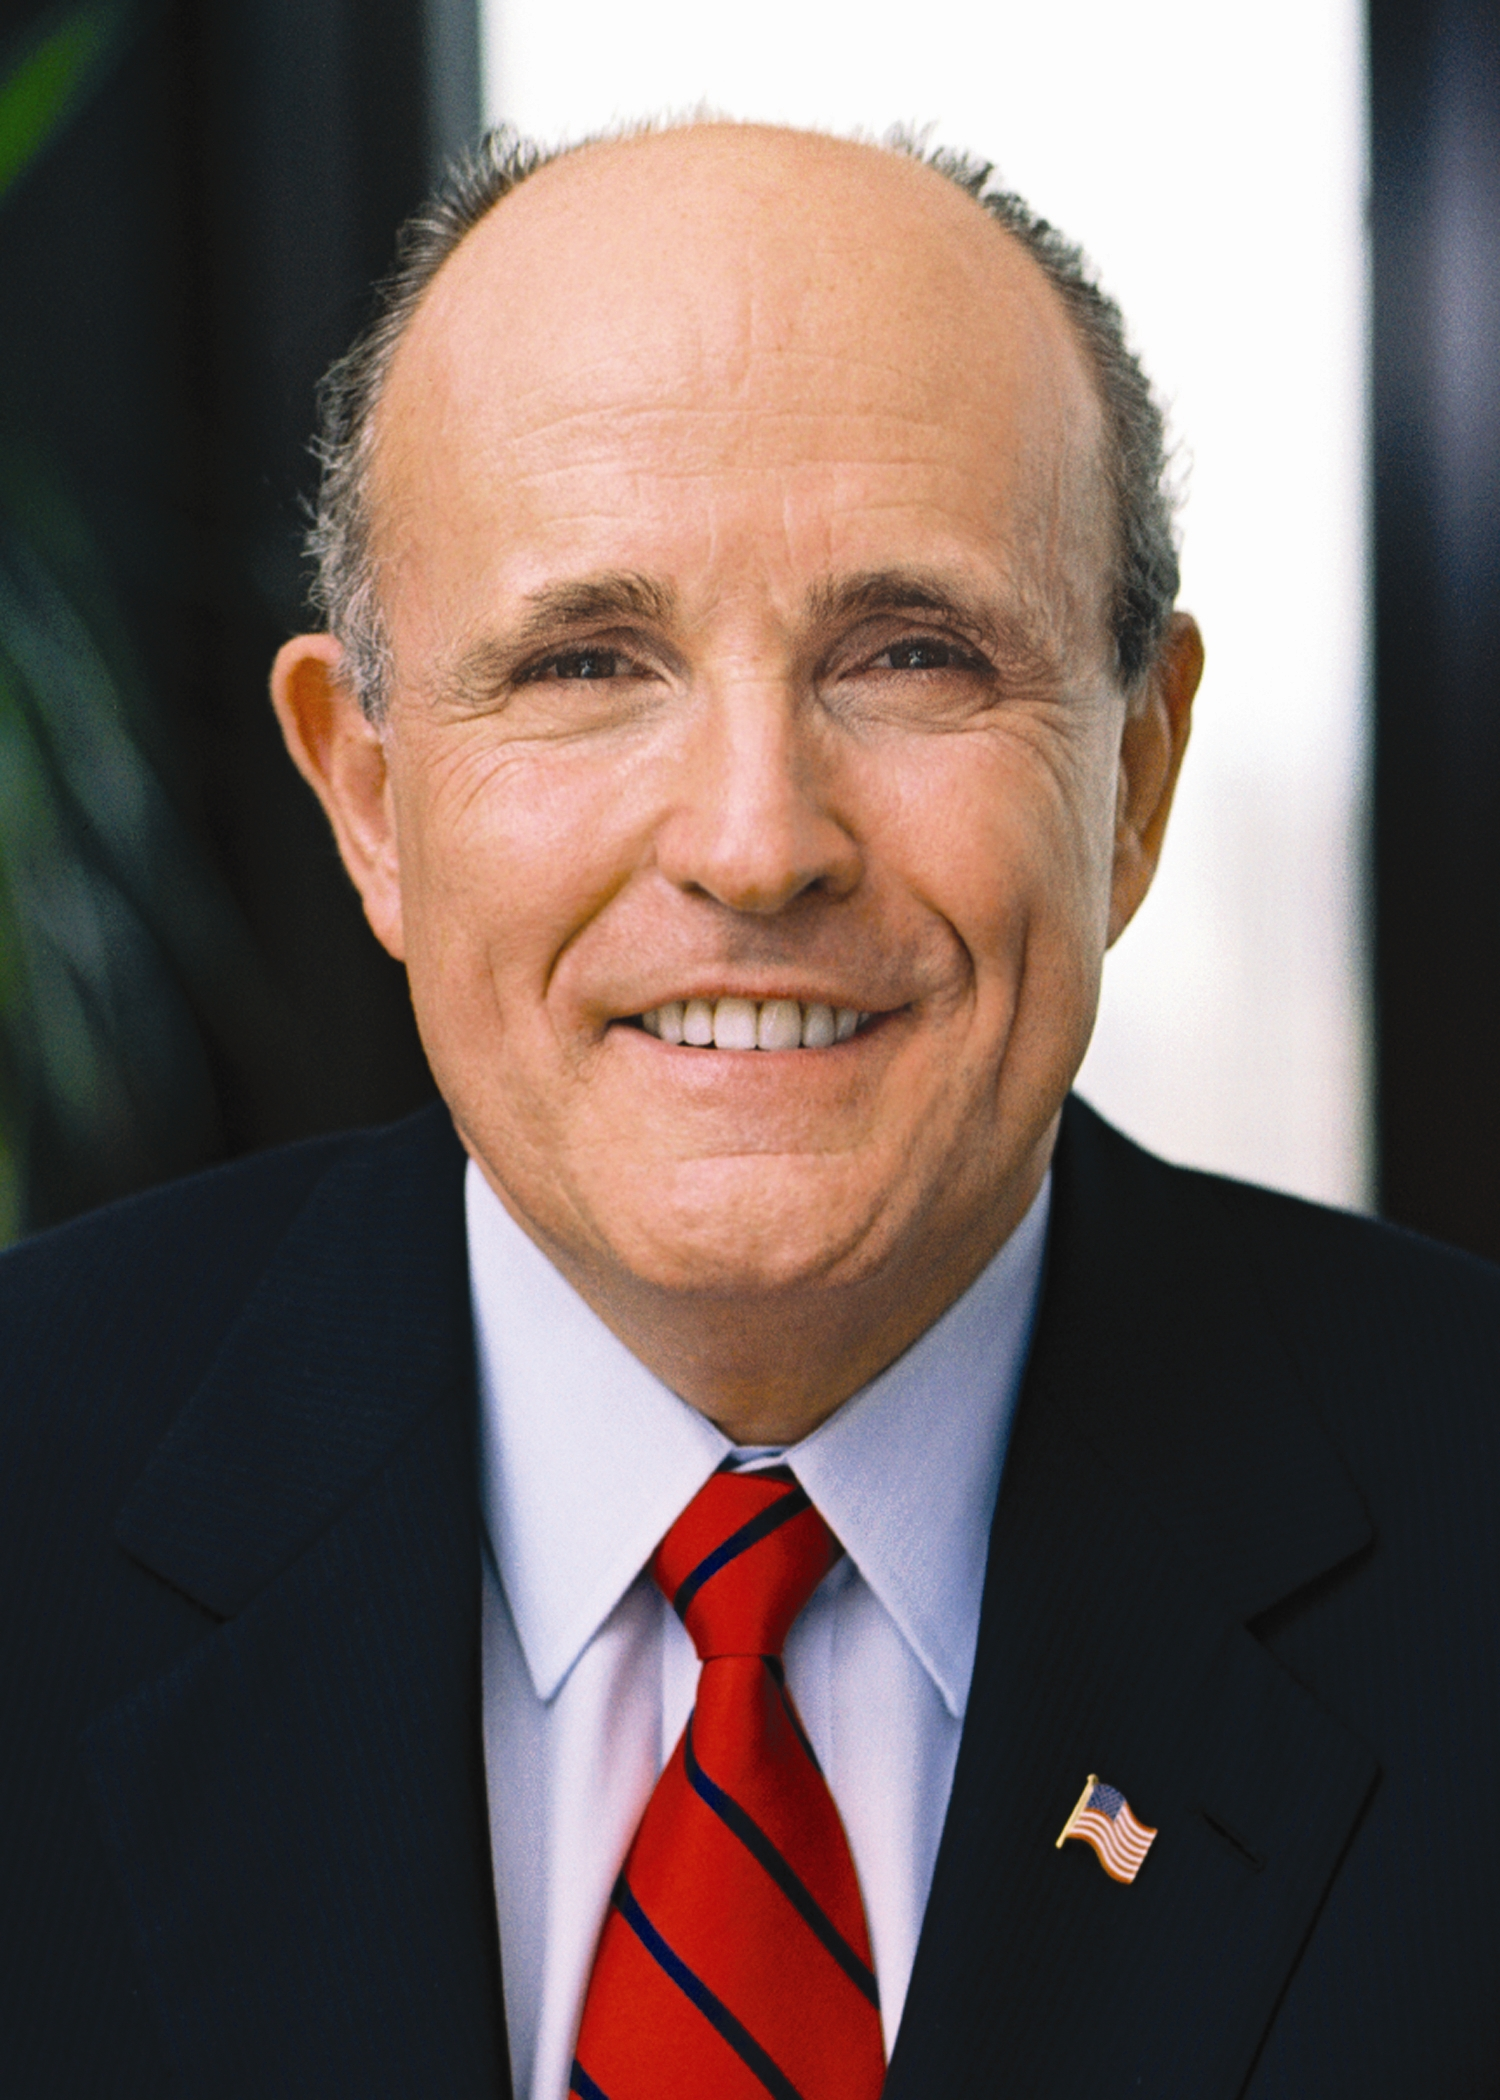 Rudy's Sanders (US 10, Brown)